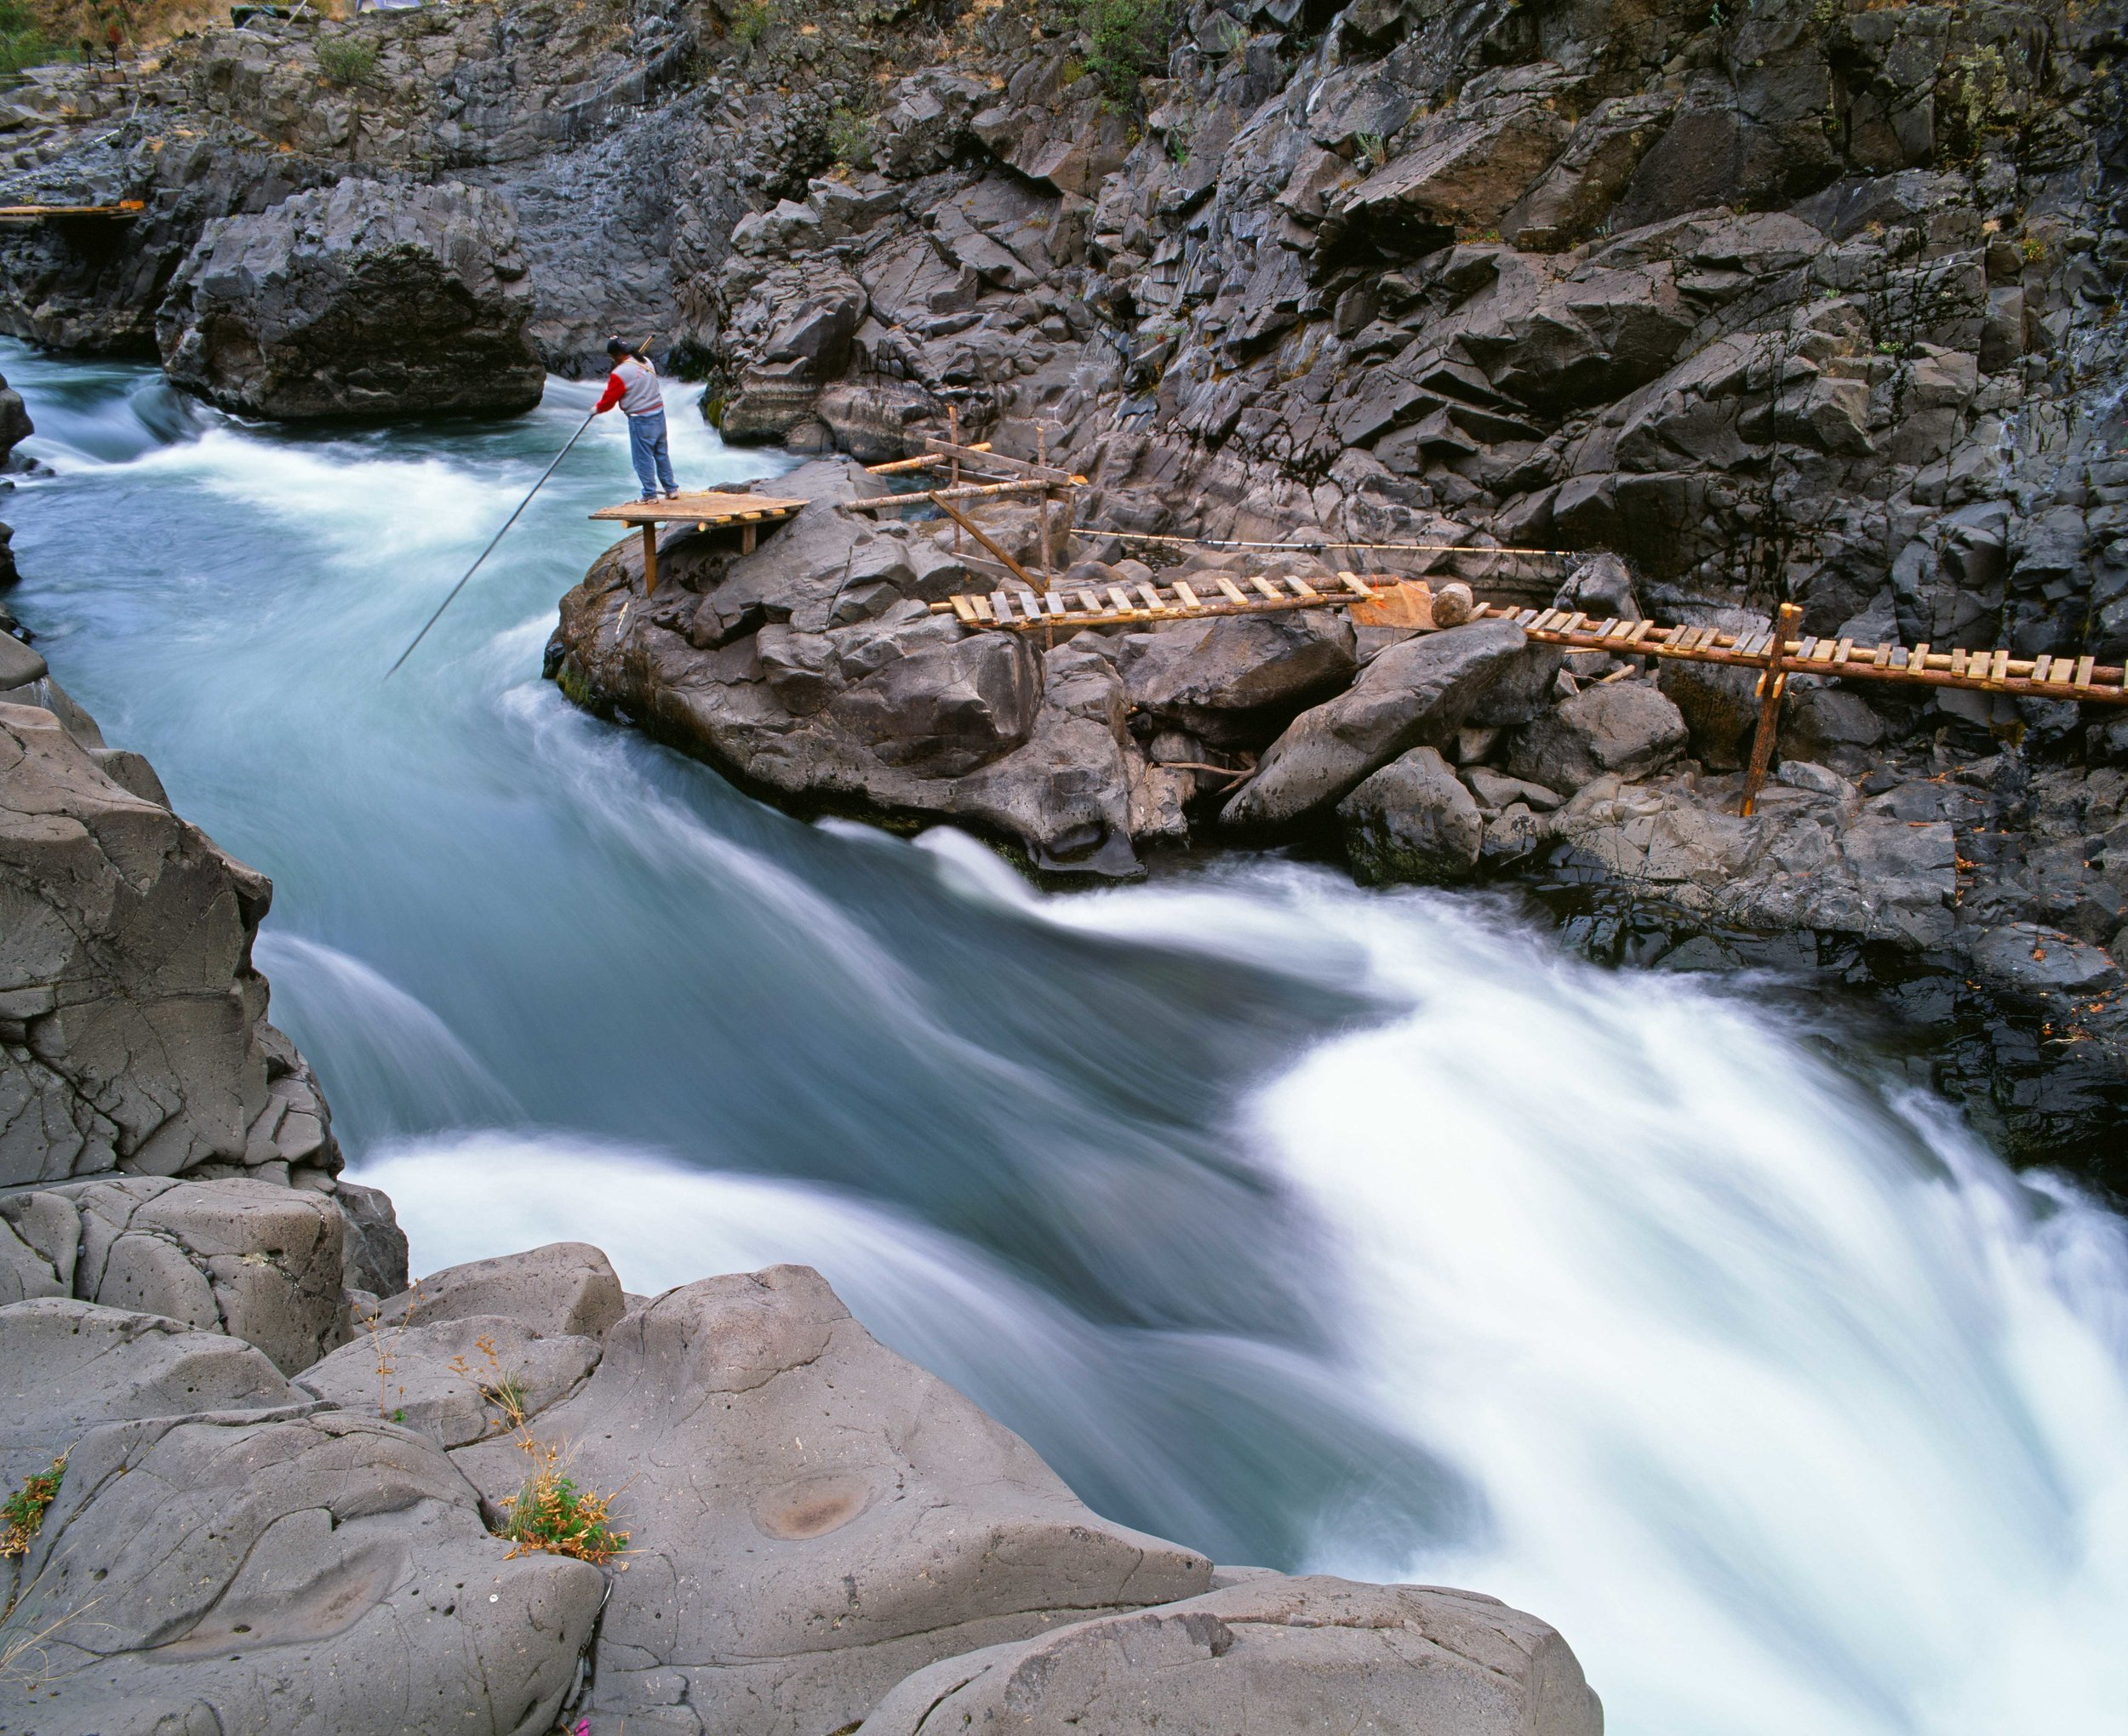 Yakima dip net fisherman on the Klicktitat River,WA.jpg